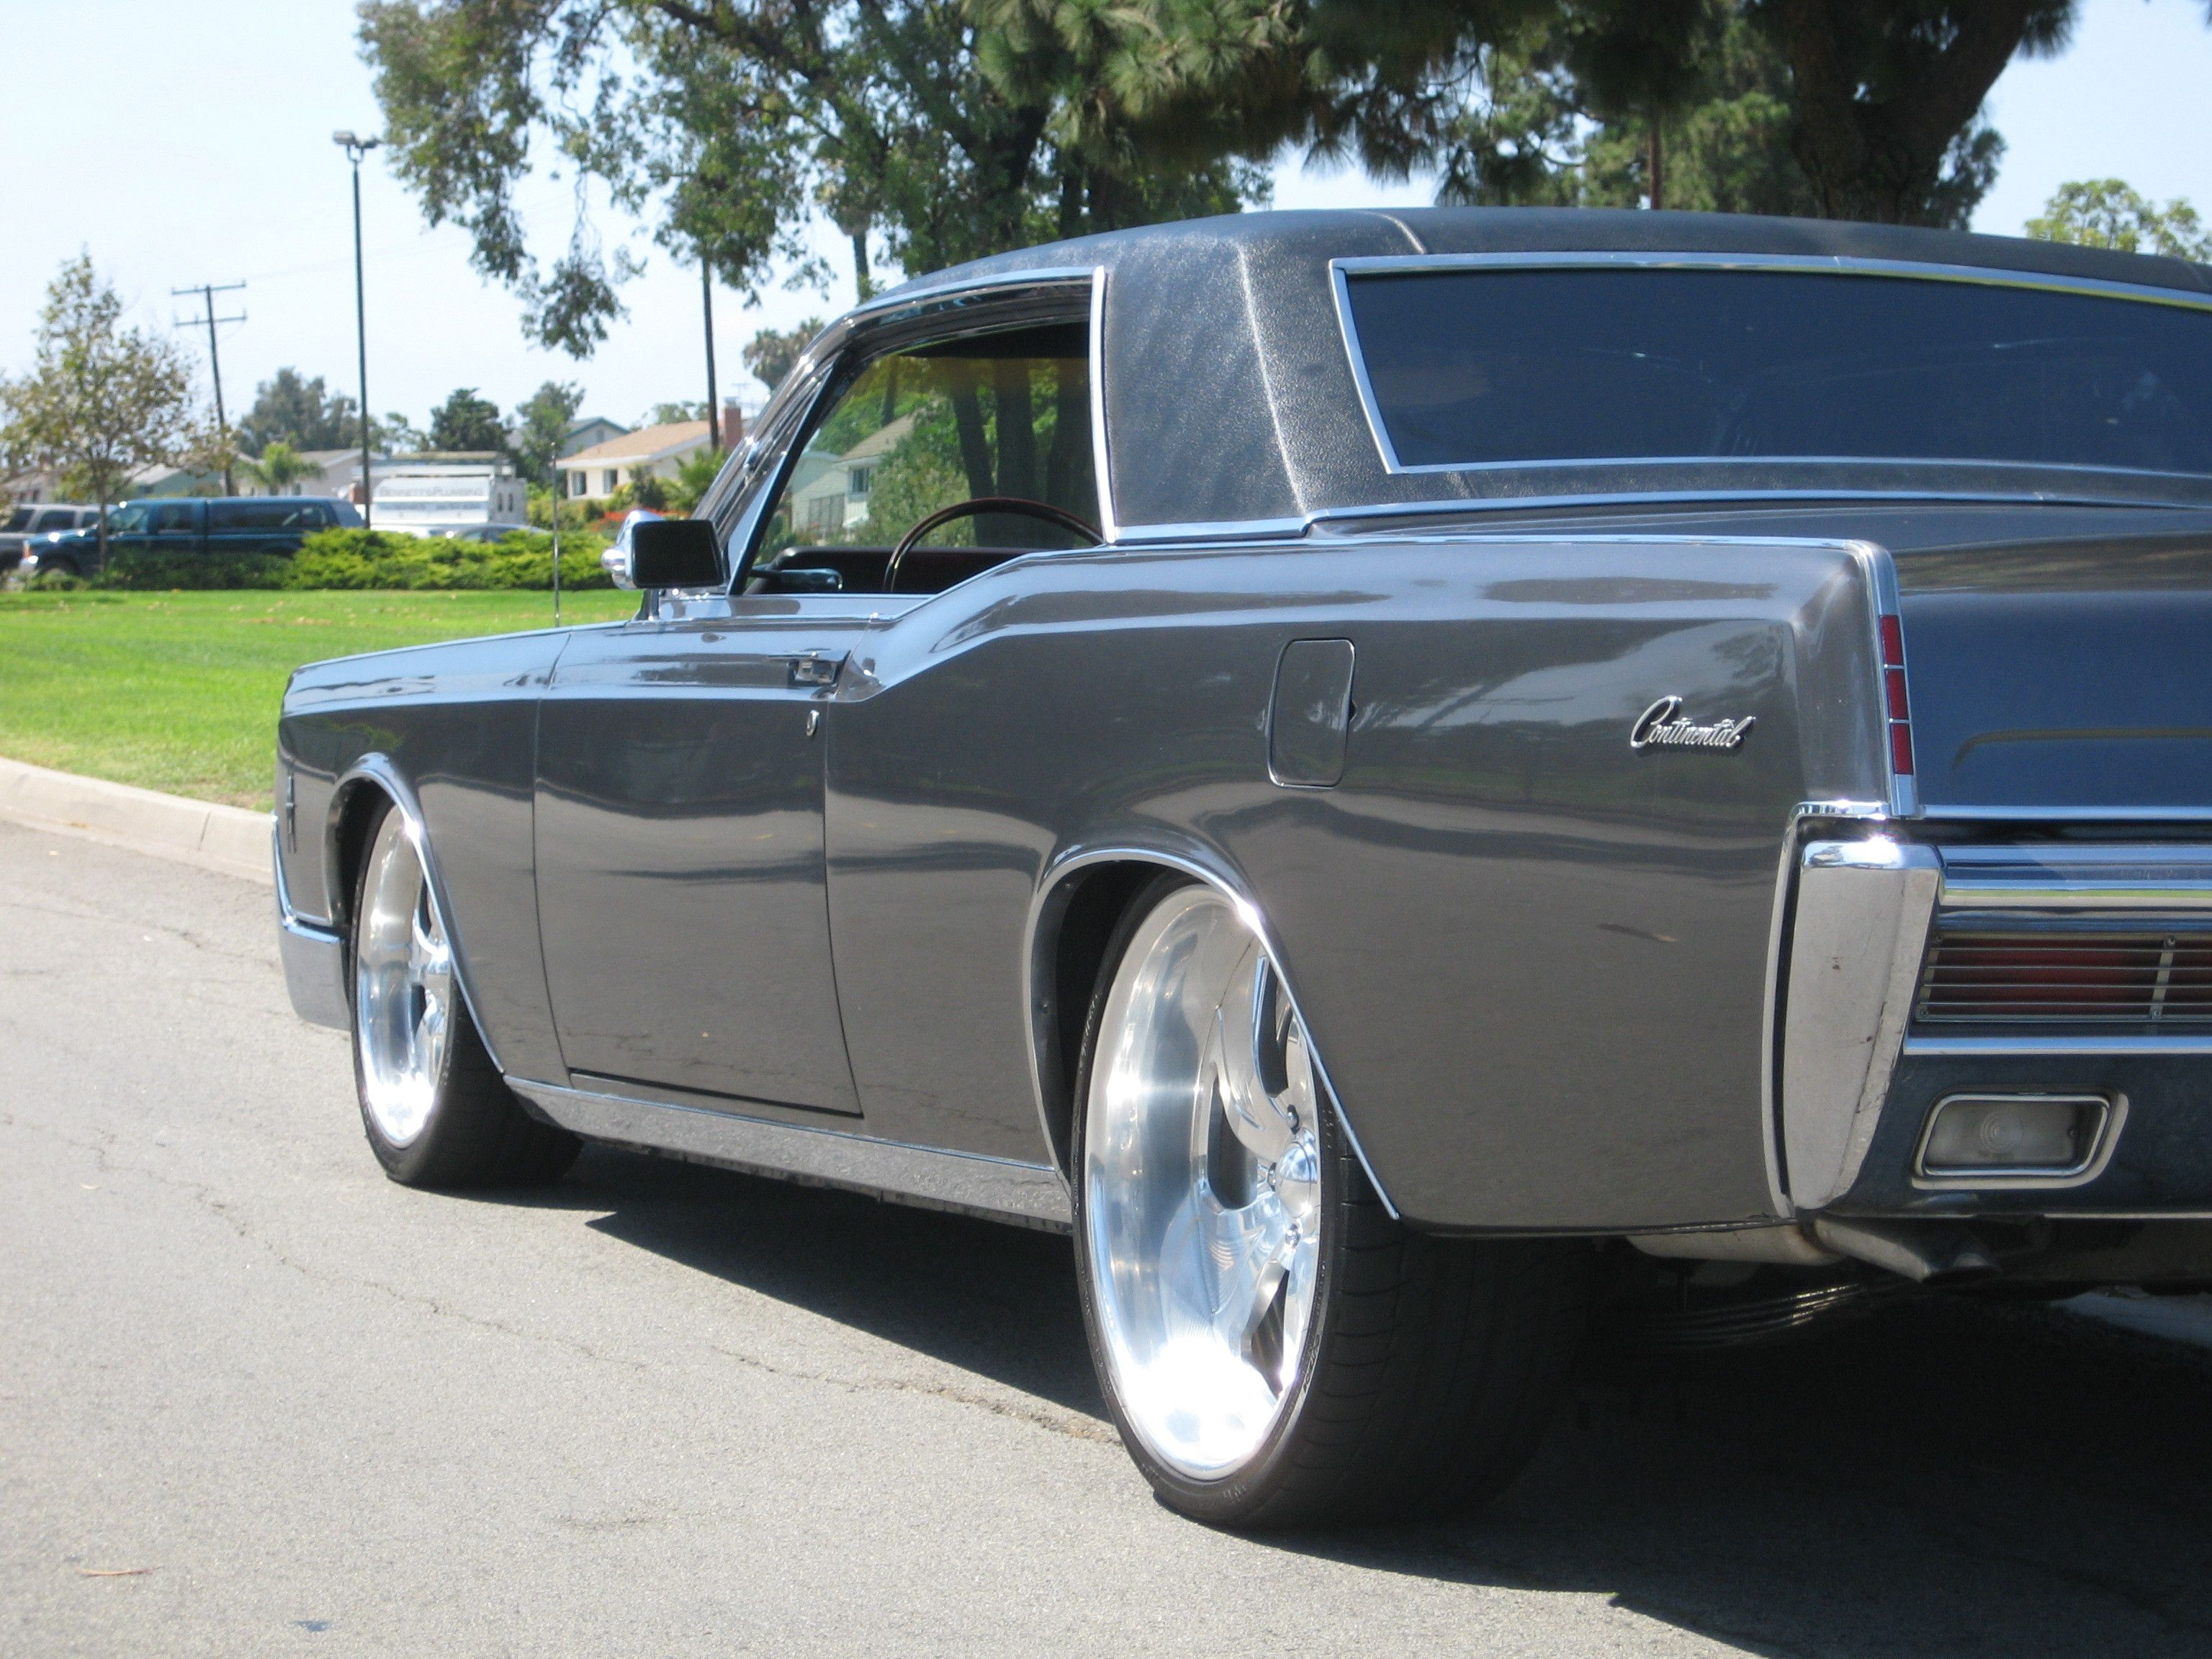 Check out customized gregory31 s 1966 lincoln continental photos parts specs modification for